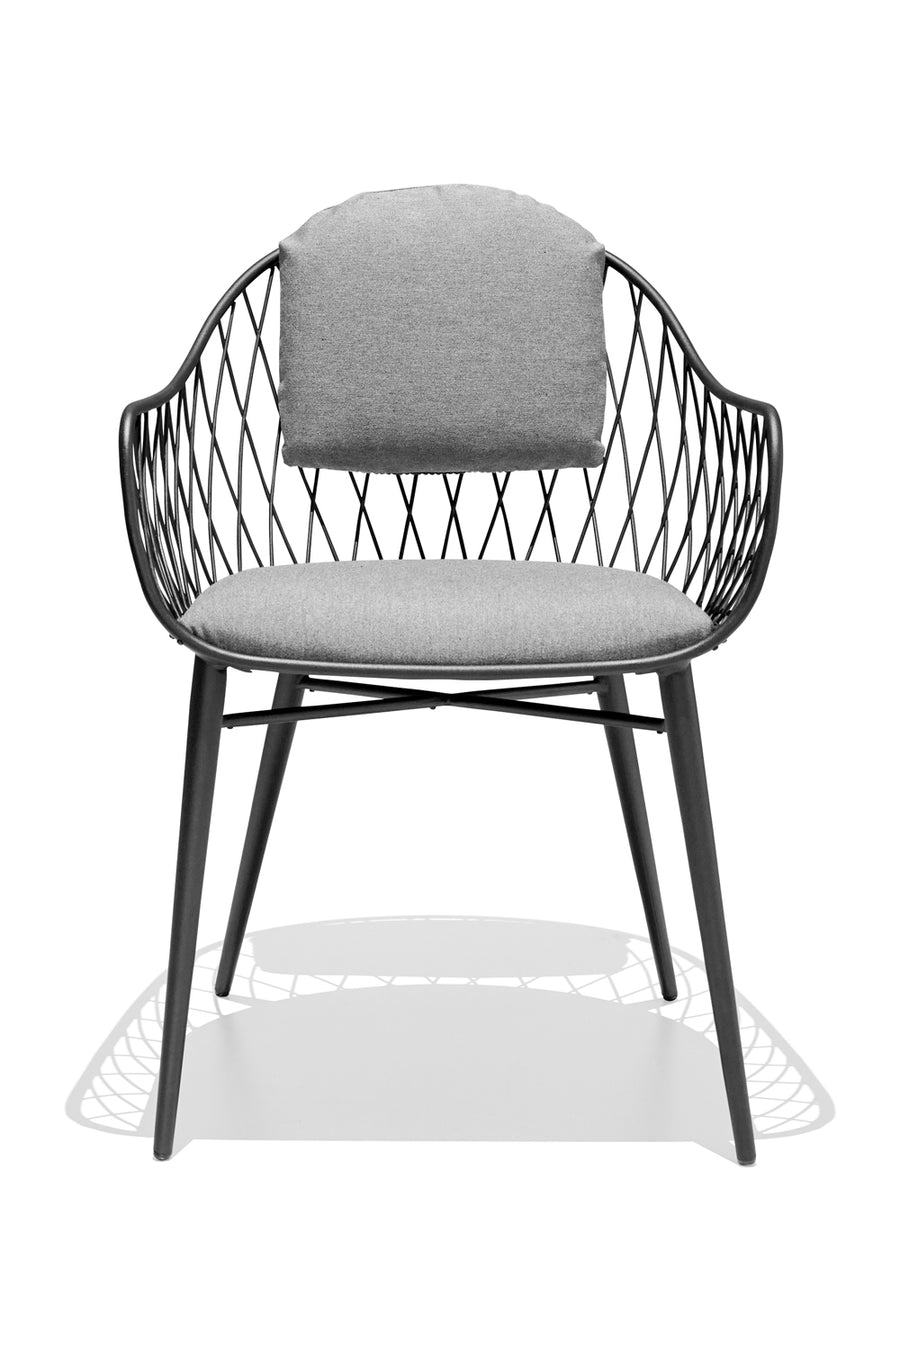 MOSMAN chair